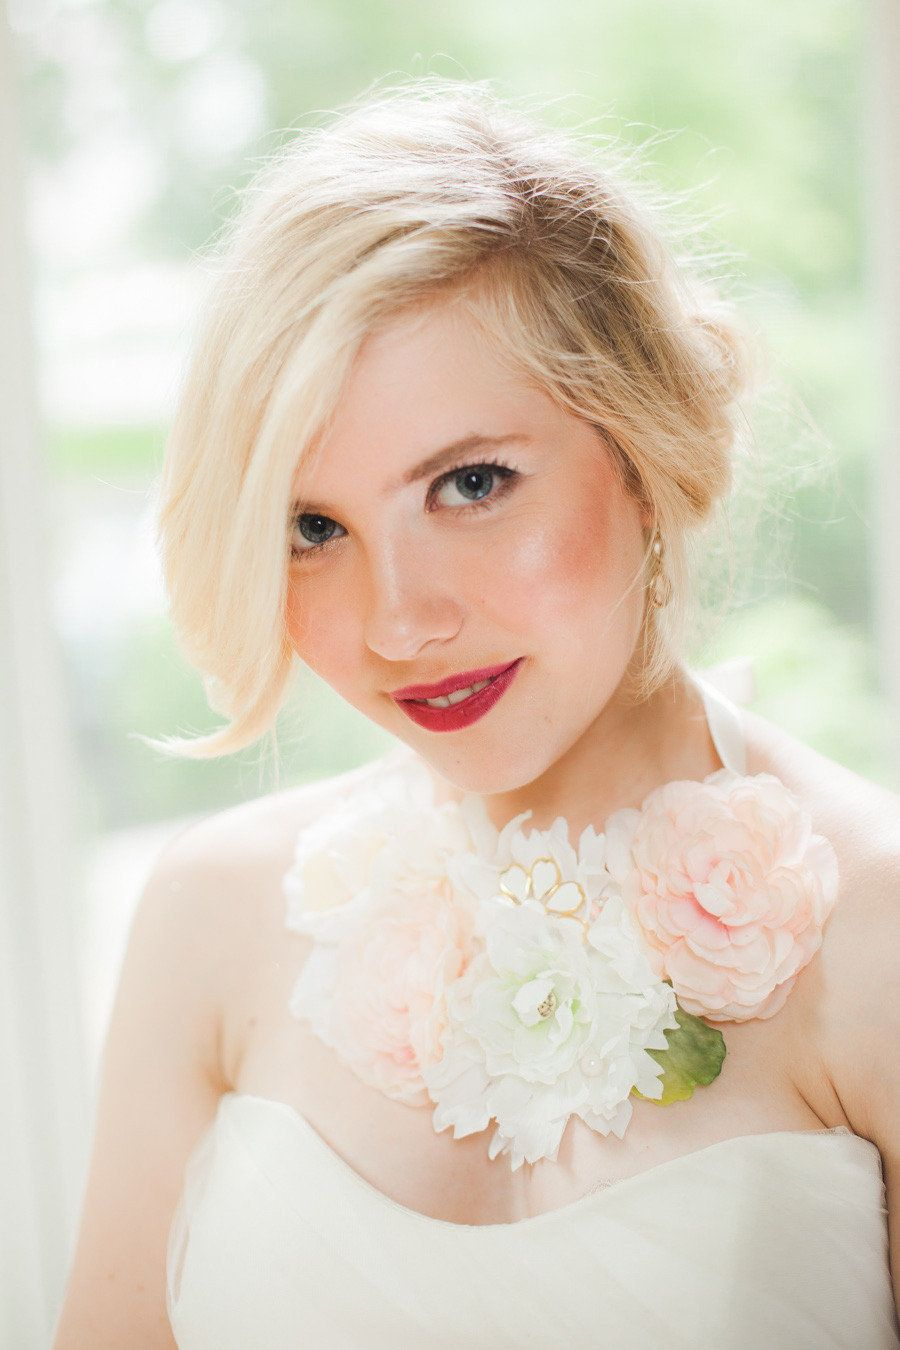 Vintage french romance photoshoot from sonia bourdon french